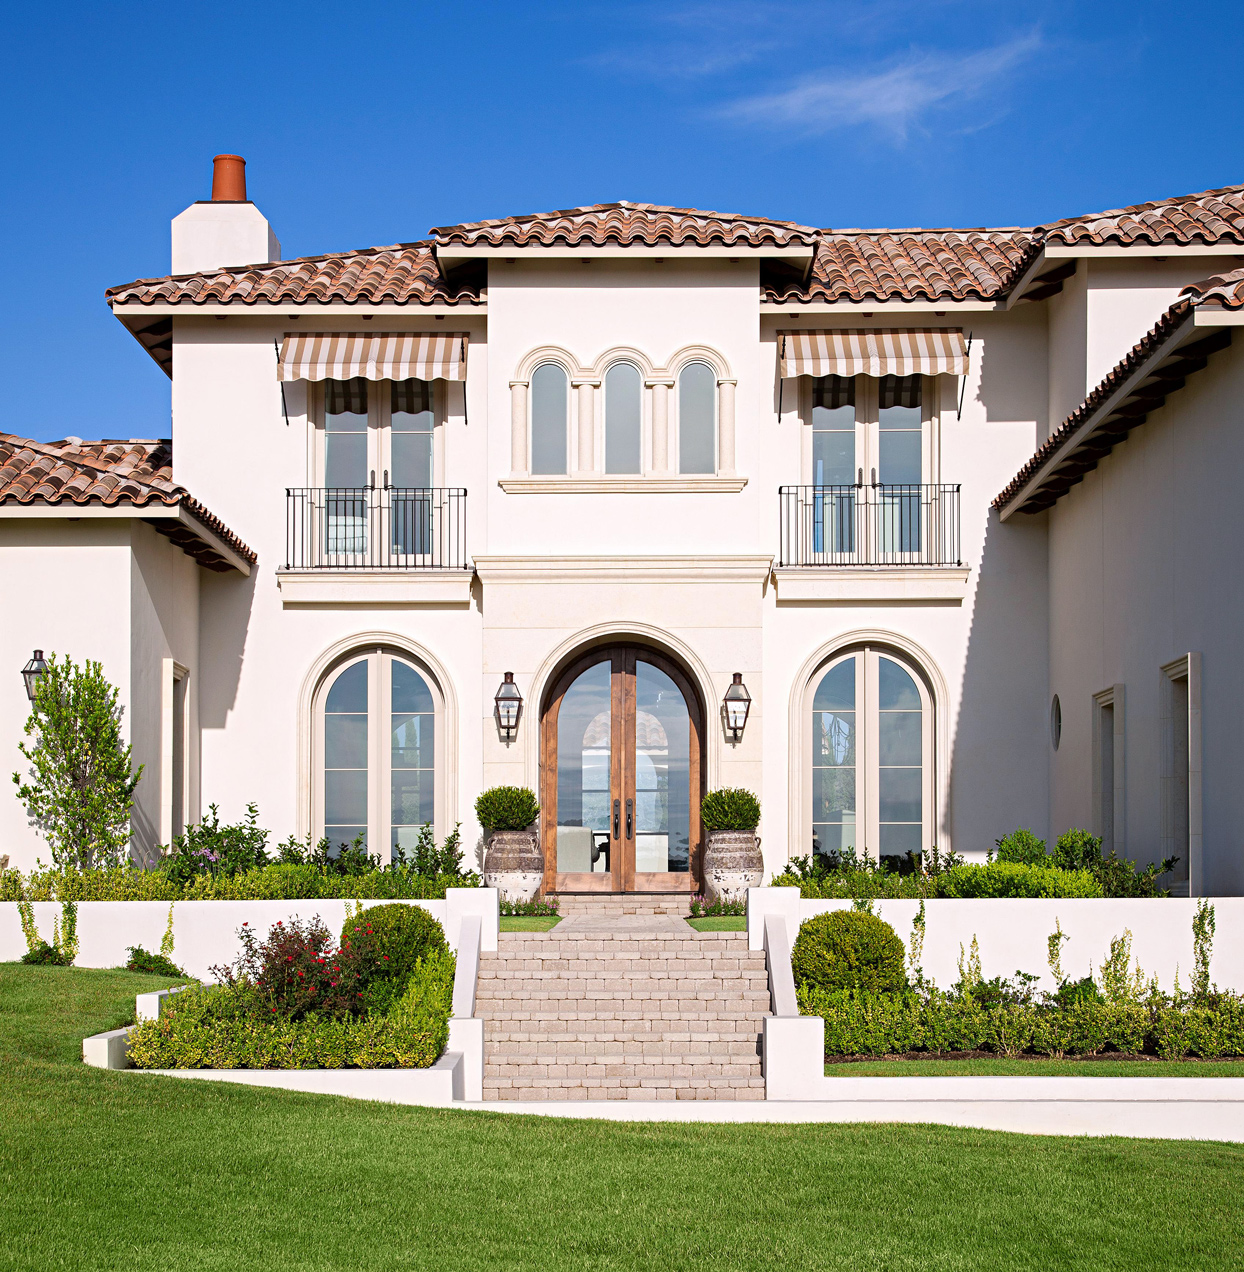 stucco home with clay roof tiles and french door